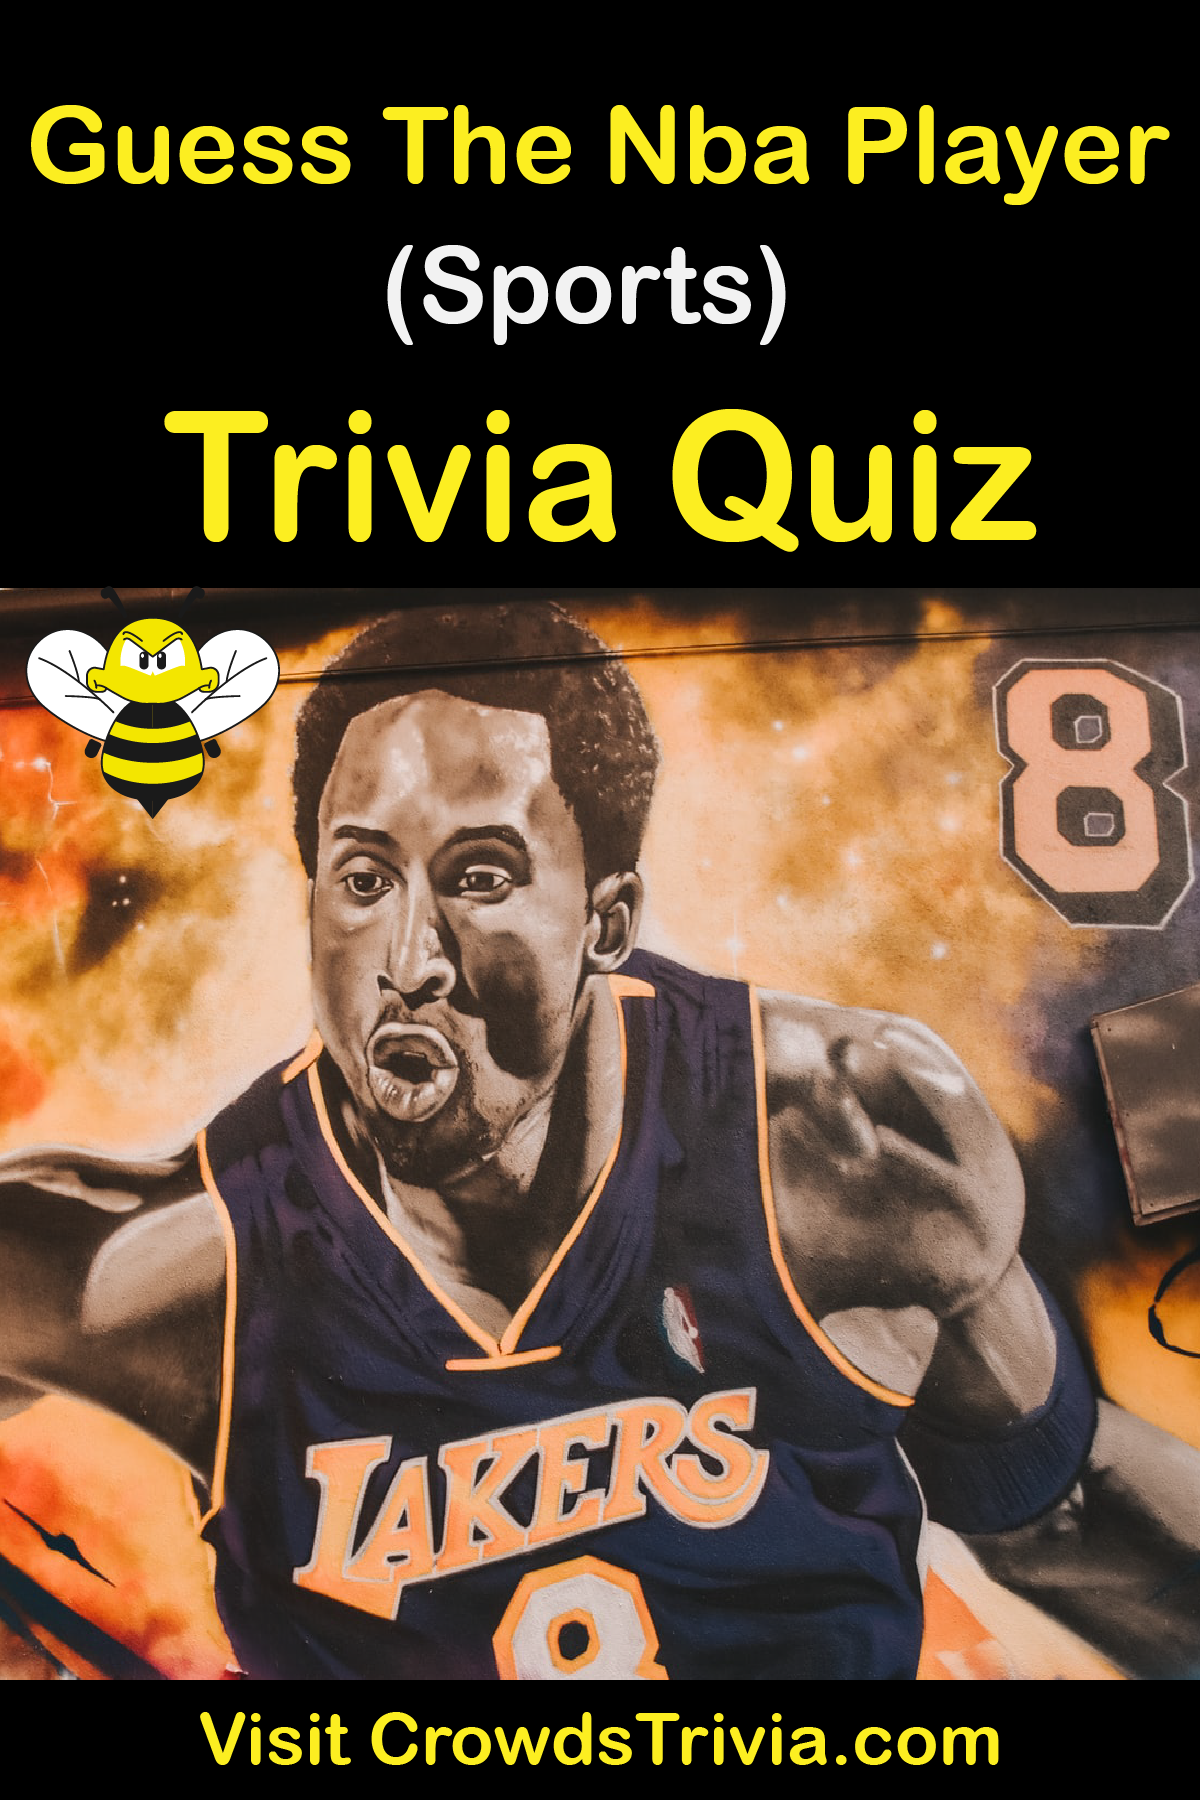 Guess The Nba Player Trivia Quiz Questions And Answers Fun Facts In 2020 Trivia Quiz Questions Sports Quiz Trivia Quiz